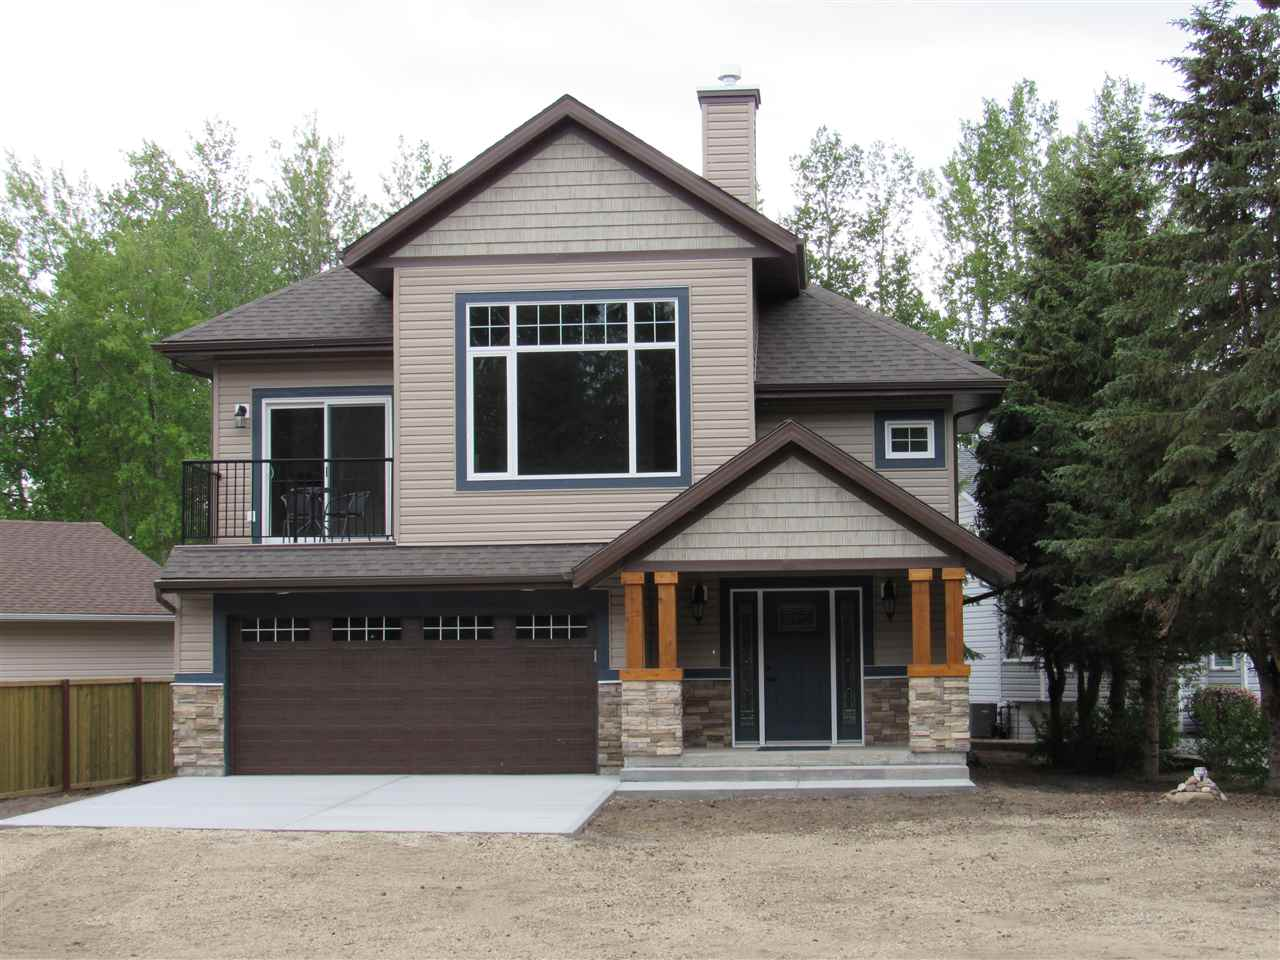 Must see NEW home in the beautiful lake community of Ross Haven. Only 45 min drive from Edmonton, only 2 min walk to Lac Ste. Anne for all your boating, kayaking and water activities. Spray foam insulation keeps heating cost at a minimum! Main floor has travertine tile through out. A large bedroom with WIC can is great for guests or an office with ample storage. Family room has a gas fireplace and opens up to a large deck and great backyard. There is also a concrete pad ready for a hot tub or to be closed in for a sunroom. The second floor has elegant engineered hardwood throughout. 9ft ceilings on the 2nd floor with HUGE 12ft in the living room. A gas fireplace with stacked stone surround also highlights this space. Open concept kitchen/dining room with patios off both sides give you ample space for entertaining. Chefs kitchen with high end stainless appliances and granite counters. 3 bedrooms including the master on this floor, jacuzzi tub and stand alone shower in ensuite! Perfect retreat to call home!